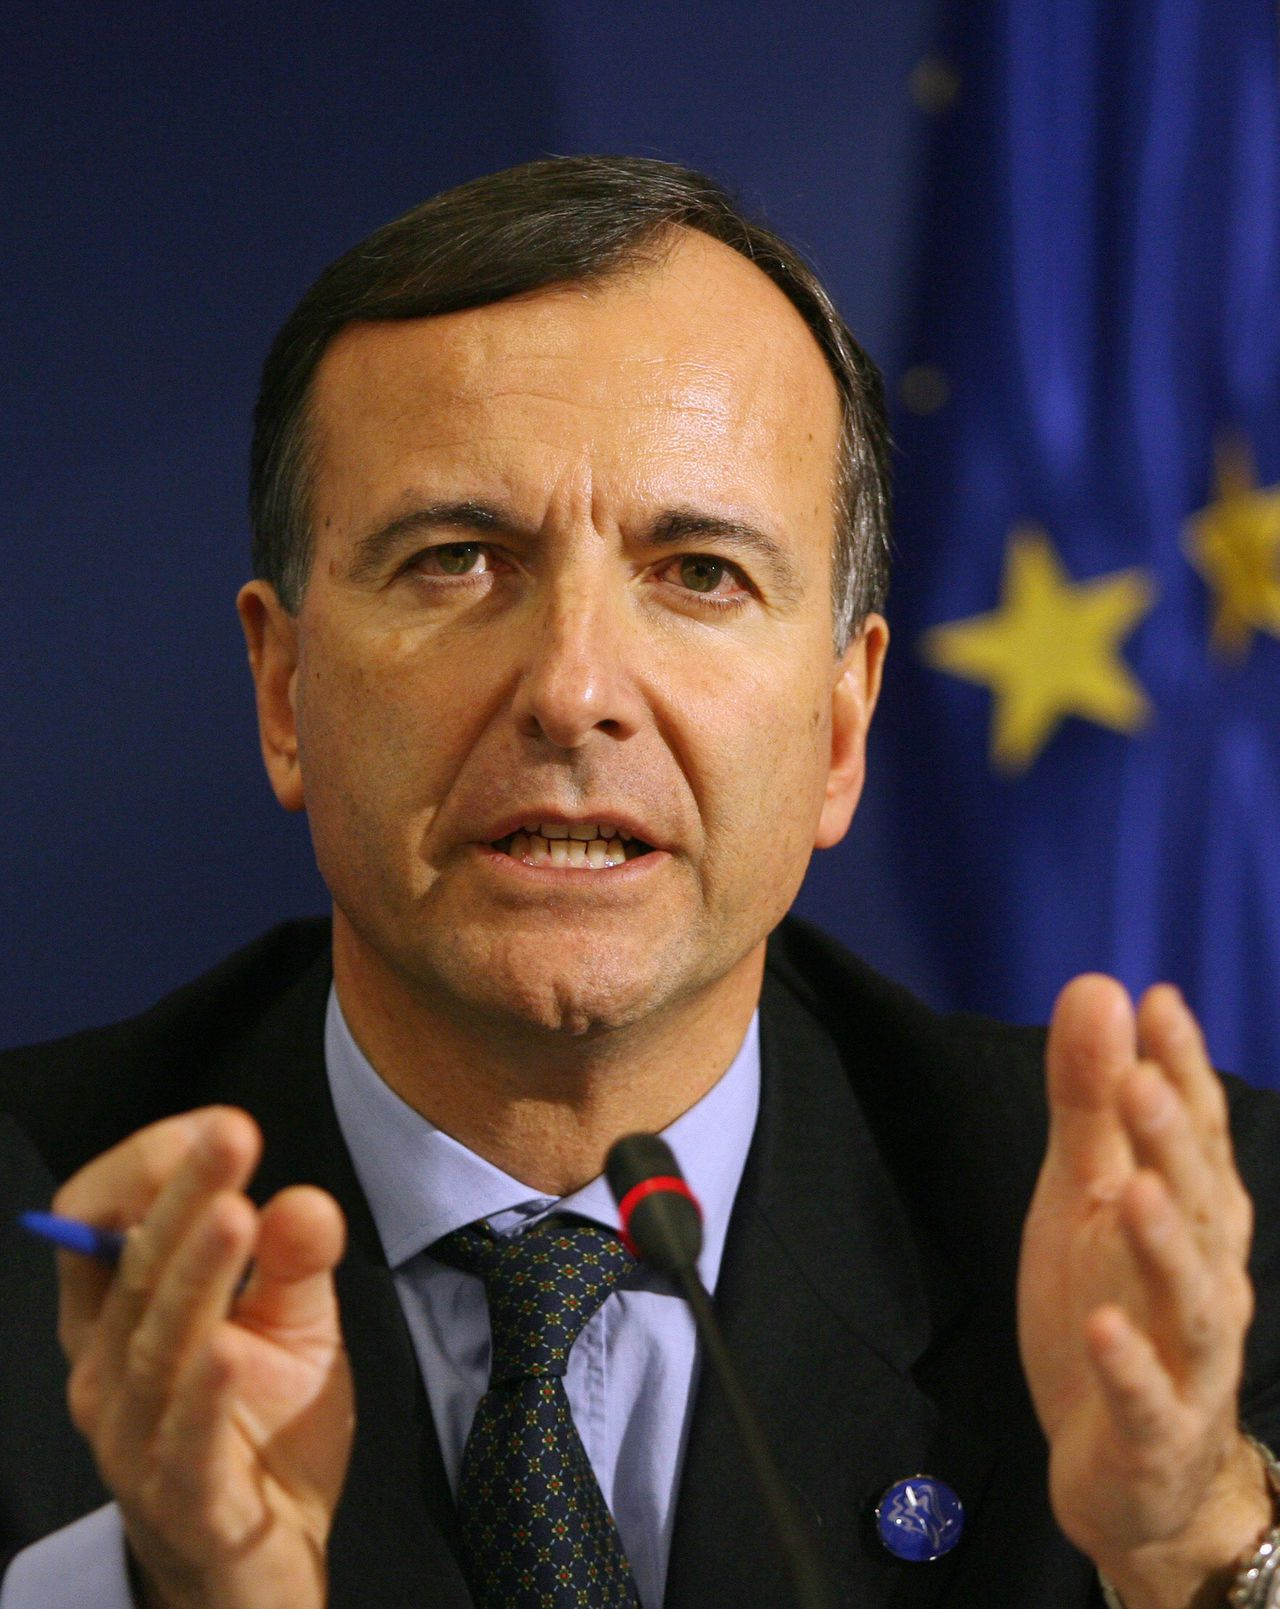 Vertrekkend (?) Europees Commissaris Franco Frattini Foto AFP FILES - Picture taken on January 26, 2008 shows EU Vice-President Commissioner Franco Frattini talking during the final press conference of an Informal meeting of European Justice Ministers at the conference centre of Brdo pri Kranju. Frattini is set to propose new, tougher EU border controls for people traveling to and from European Union countries on February 13, 2008. AFP PHOTO /DOMINIQUE FAGET